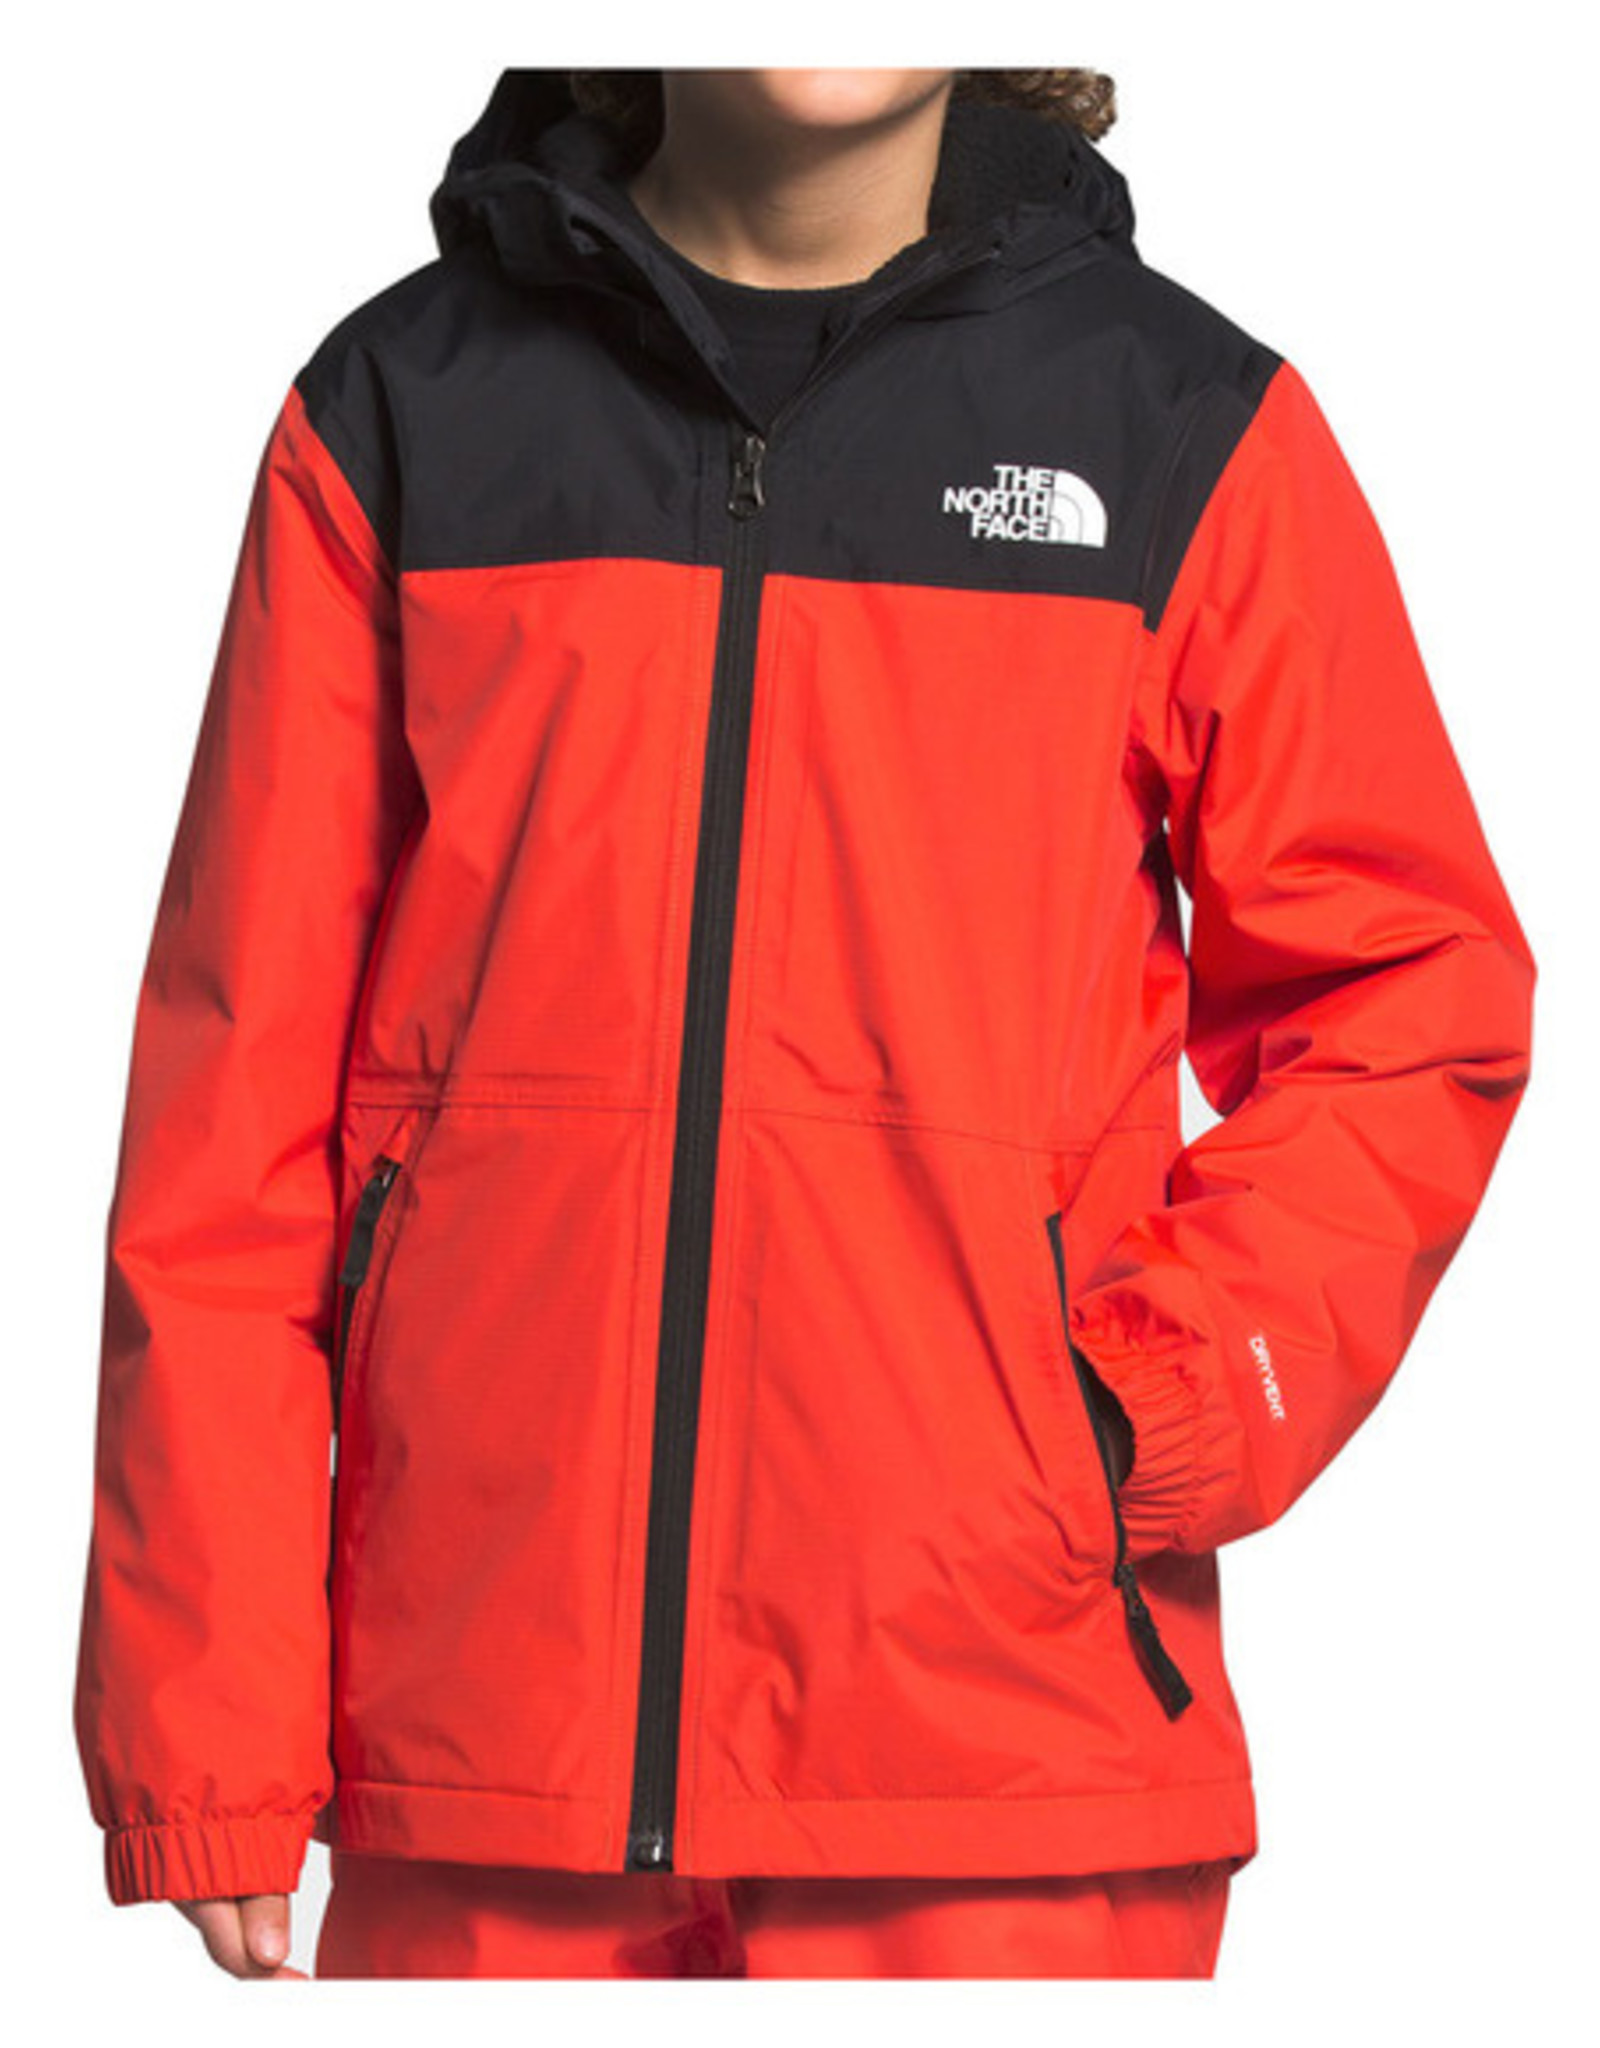 The North Face The North Face Boy's Warm Storm Rain Jacket -W2020